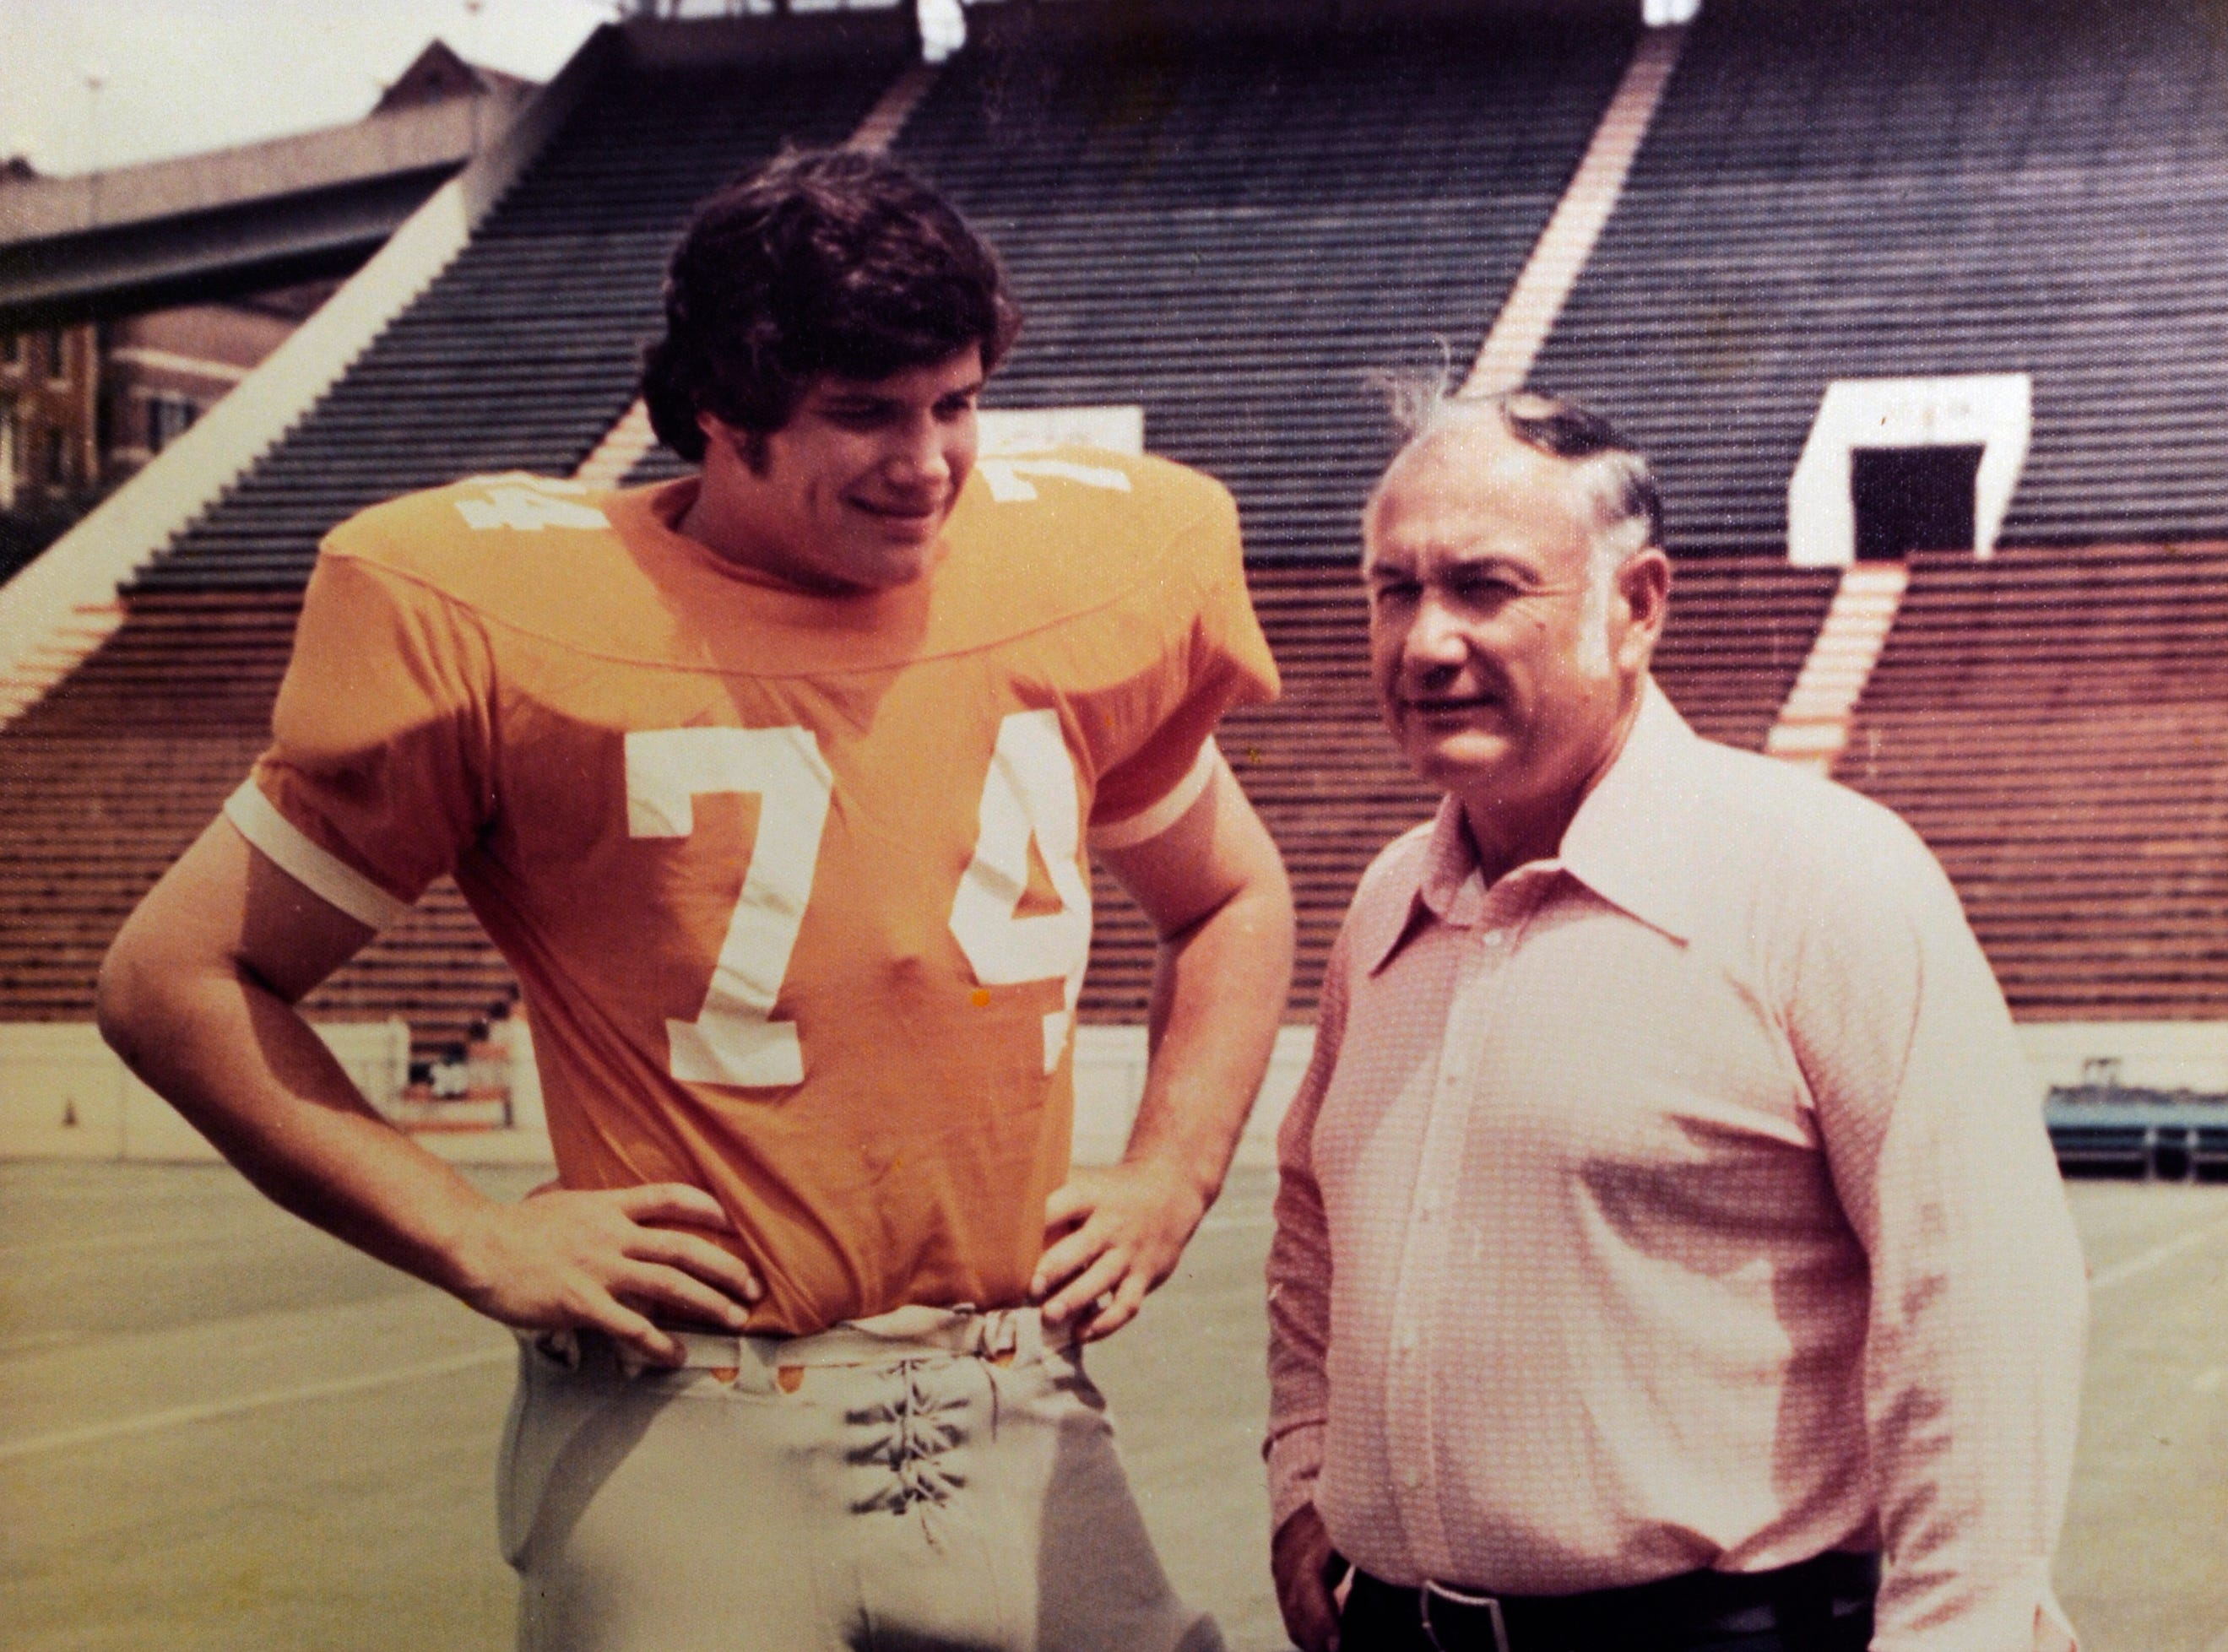 Family photograph of Bill Clabo, who was a Young High School football coach for years, and his son Phil Clabo in 1974 when he played for his dad at Young High School. On Sept. 25, Duff Park in South Knoxville is being renamed in Clabo's honor.